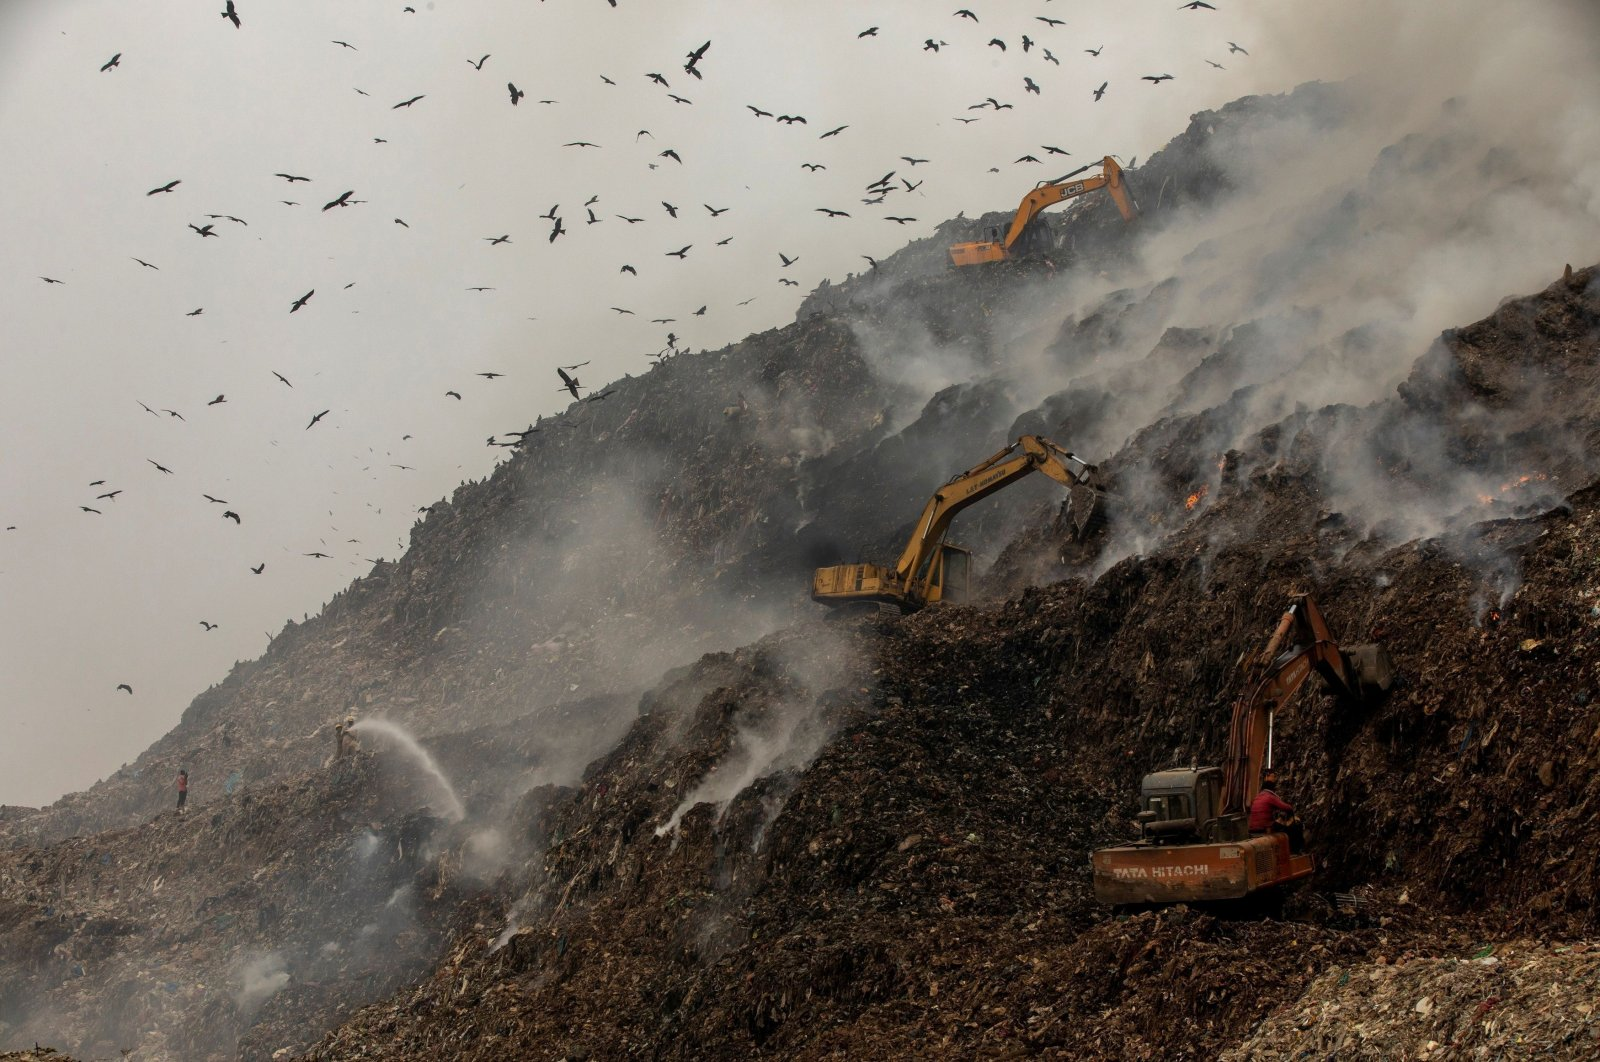 Firefighters and excavators try to douse fire as smoke billows from burning garbage at the Ghazipur landfill site in New Delhi, India, Nov. 25, 2020. (Reuters Photo)